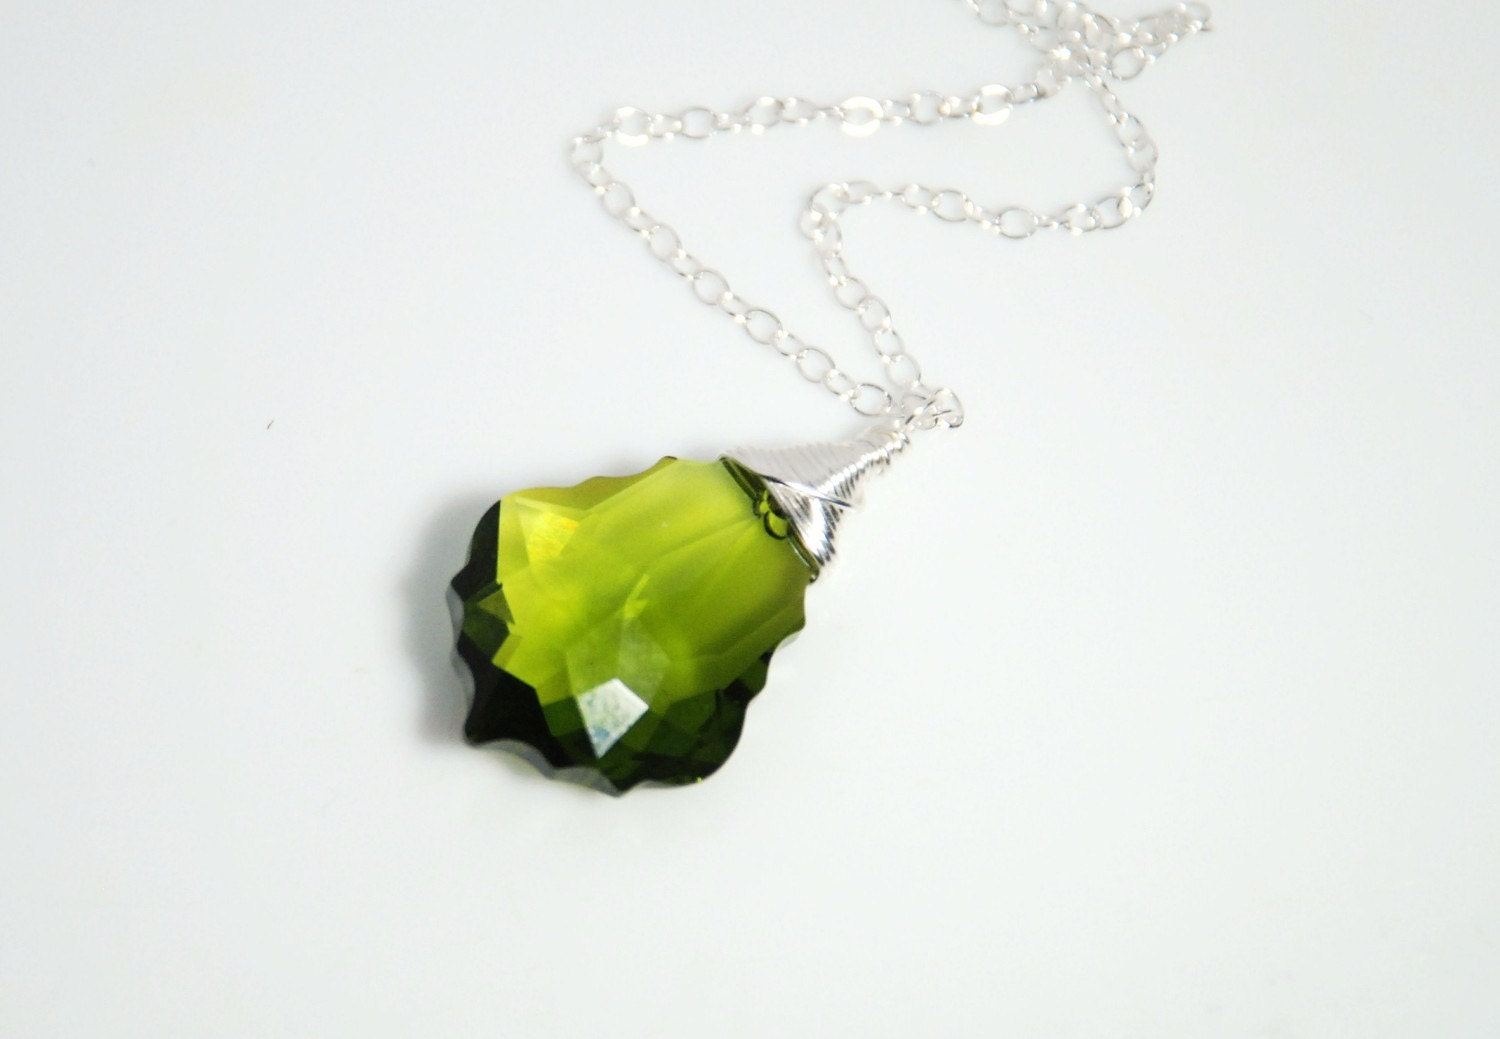 Large Swarovski Baroque pendant necklace in olivine color and sterling silver